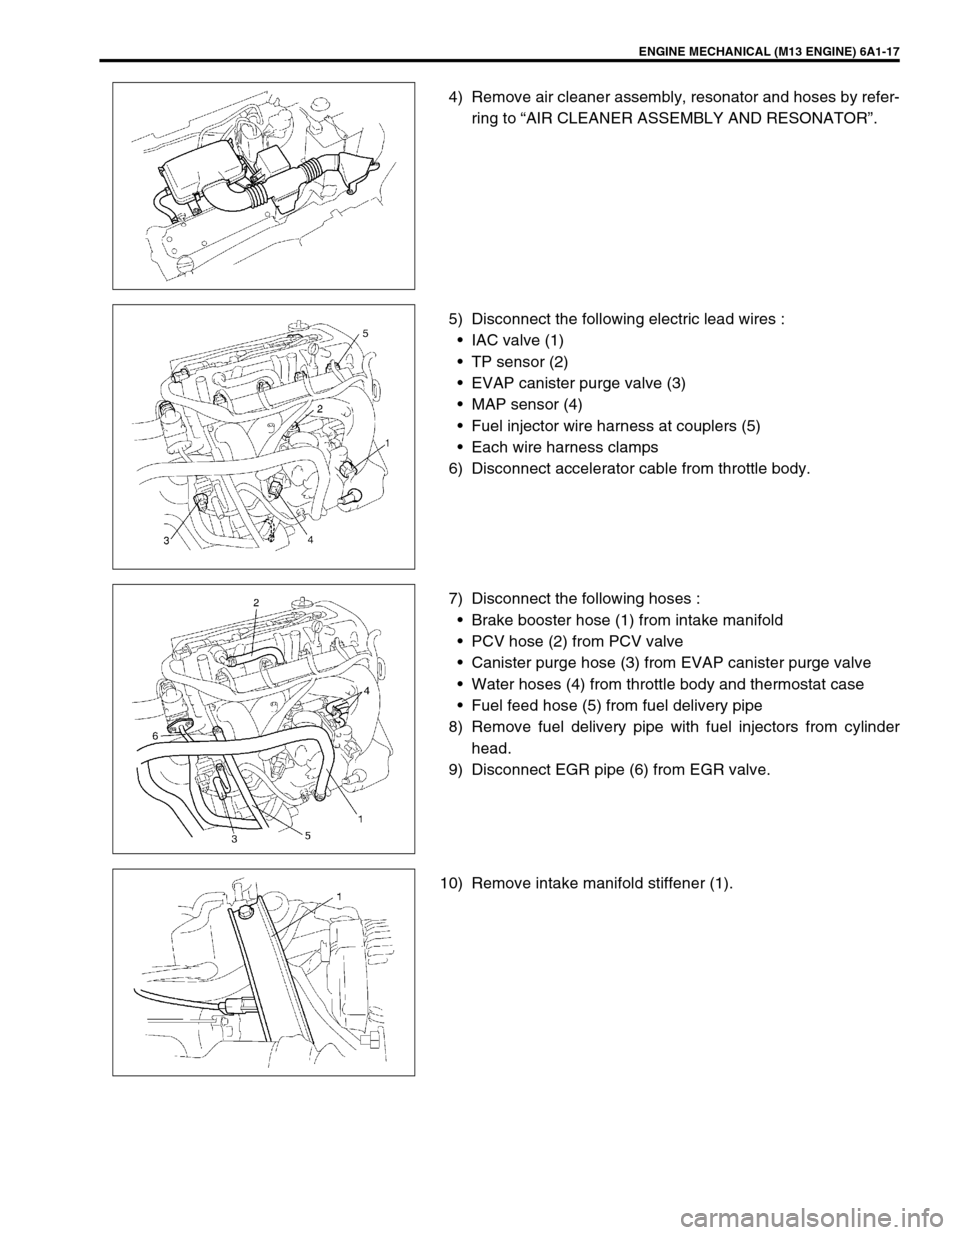 Suzuki Swift 2000 1g Rg413 Service Workshop Manual Wire Harness Clamps Page 518 Of 698